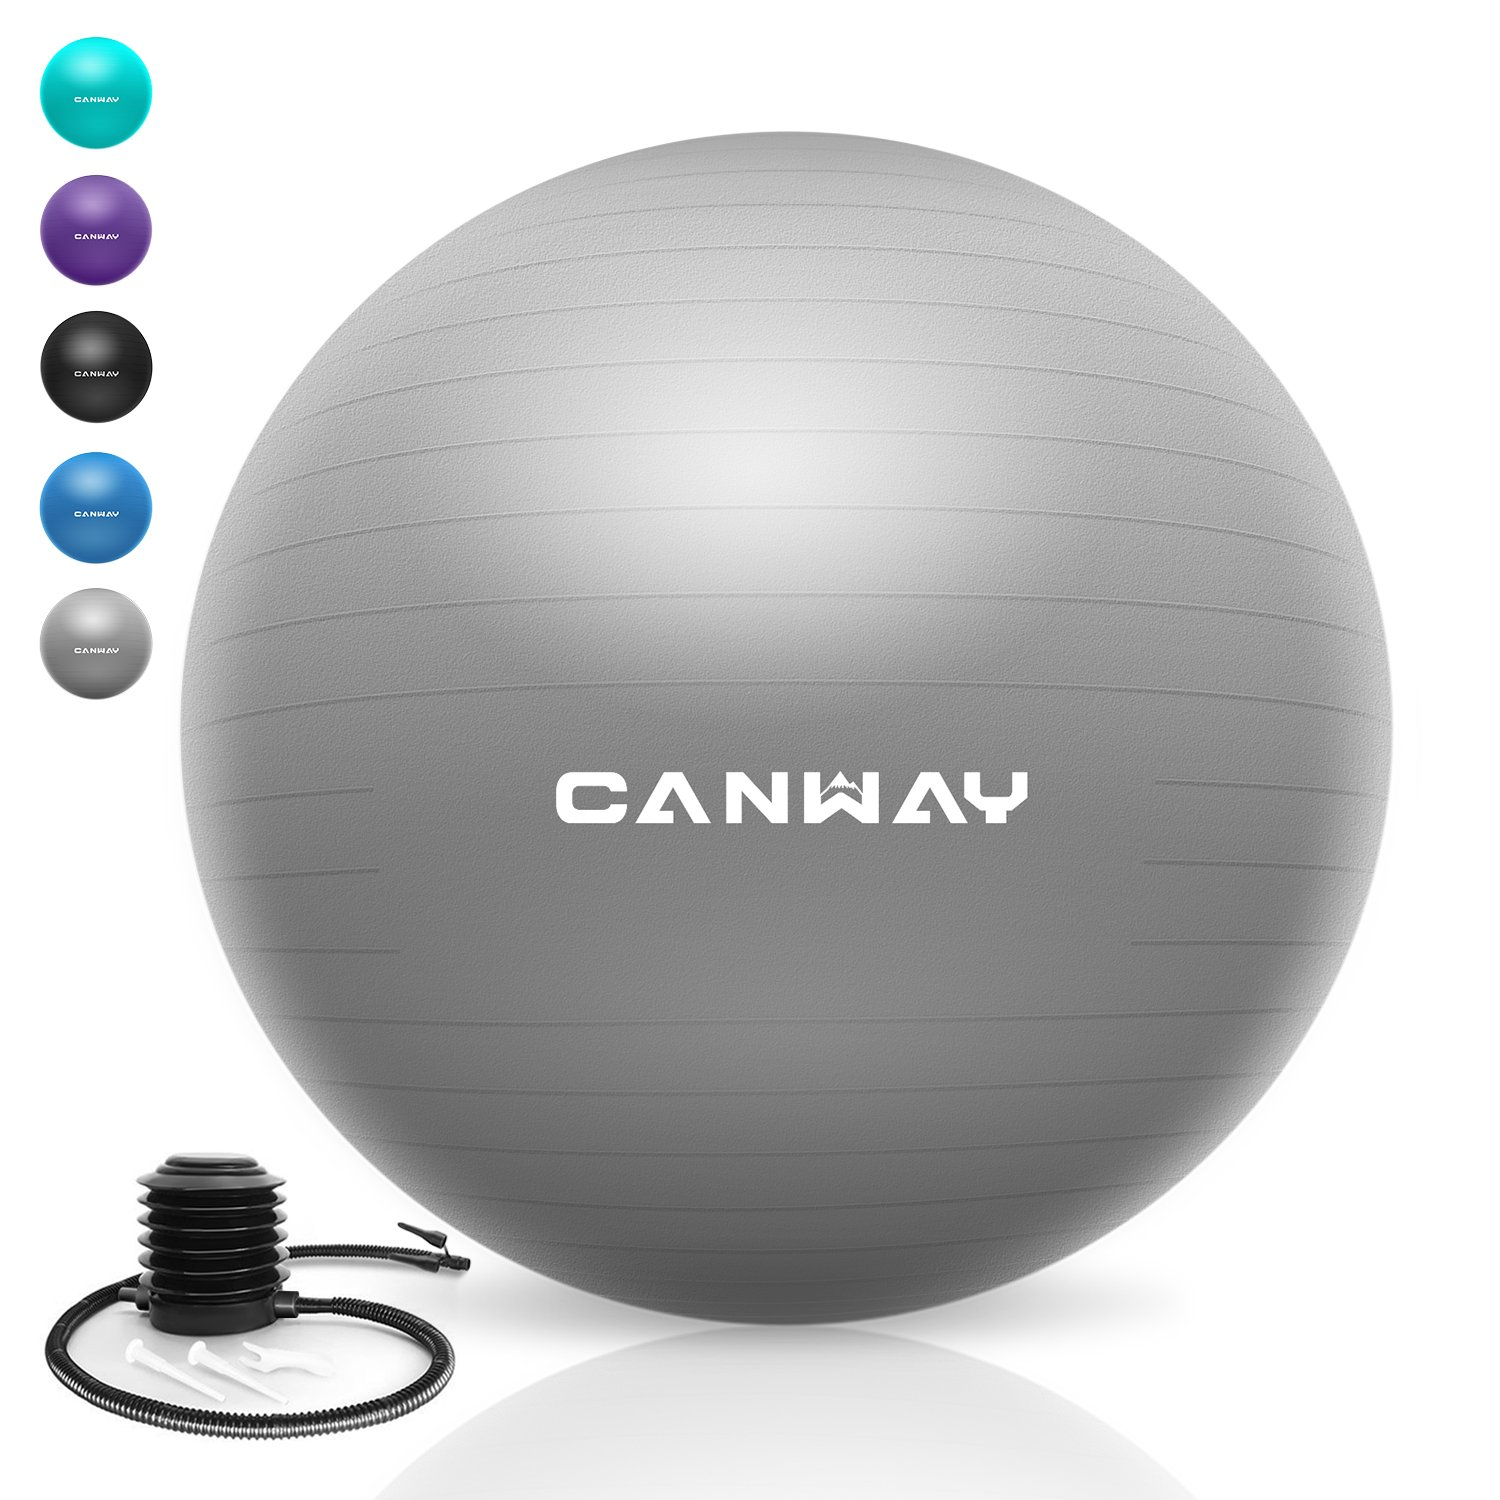 Canway Exercise Ball - Extra Thick & Slip Resistant Workout Ball, Professional Grade 2200lbs Anti-Burst Stability Ball, 65CM Yoga Ball with Quick Foot Pump (Bright Silver)